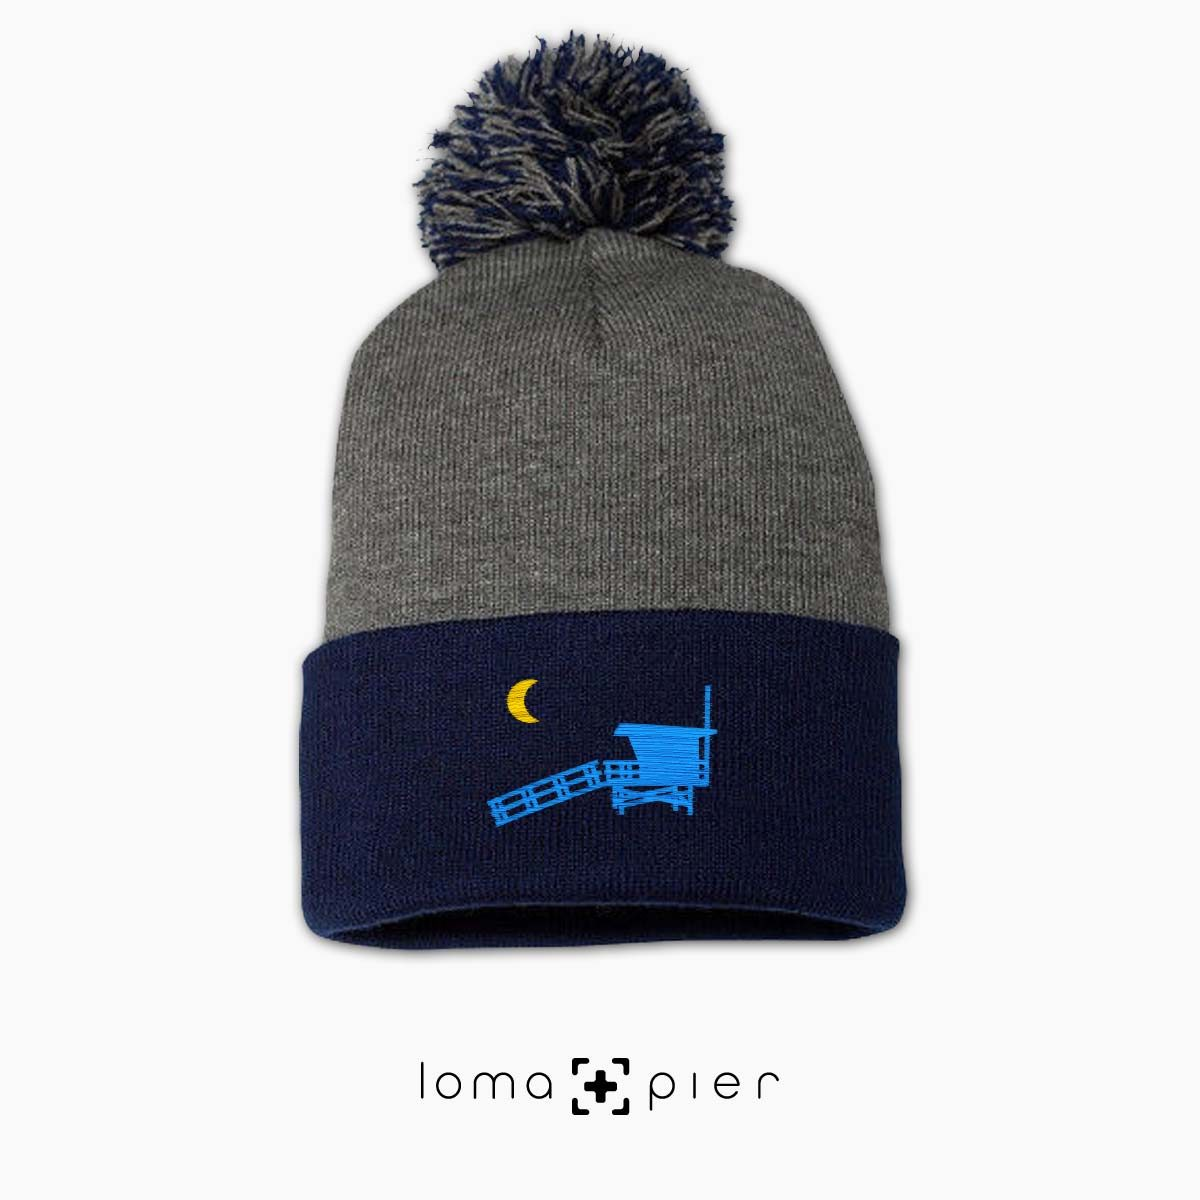 LIFEGUARD TOWER icon embroidered on a navy grey pom pom beanie by loma+pier hat store